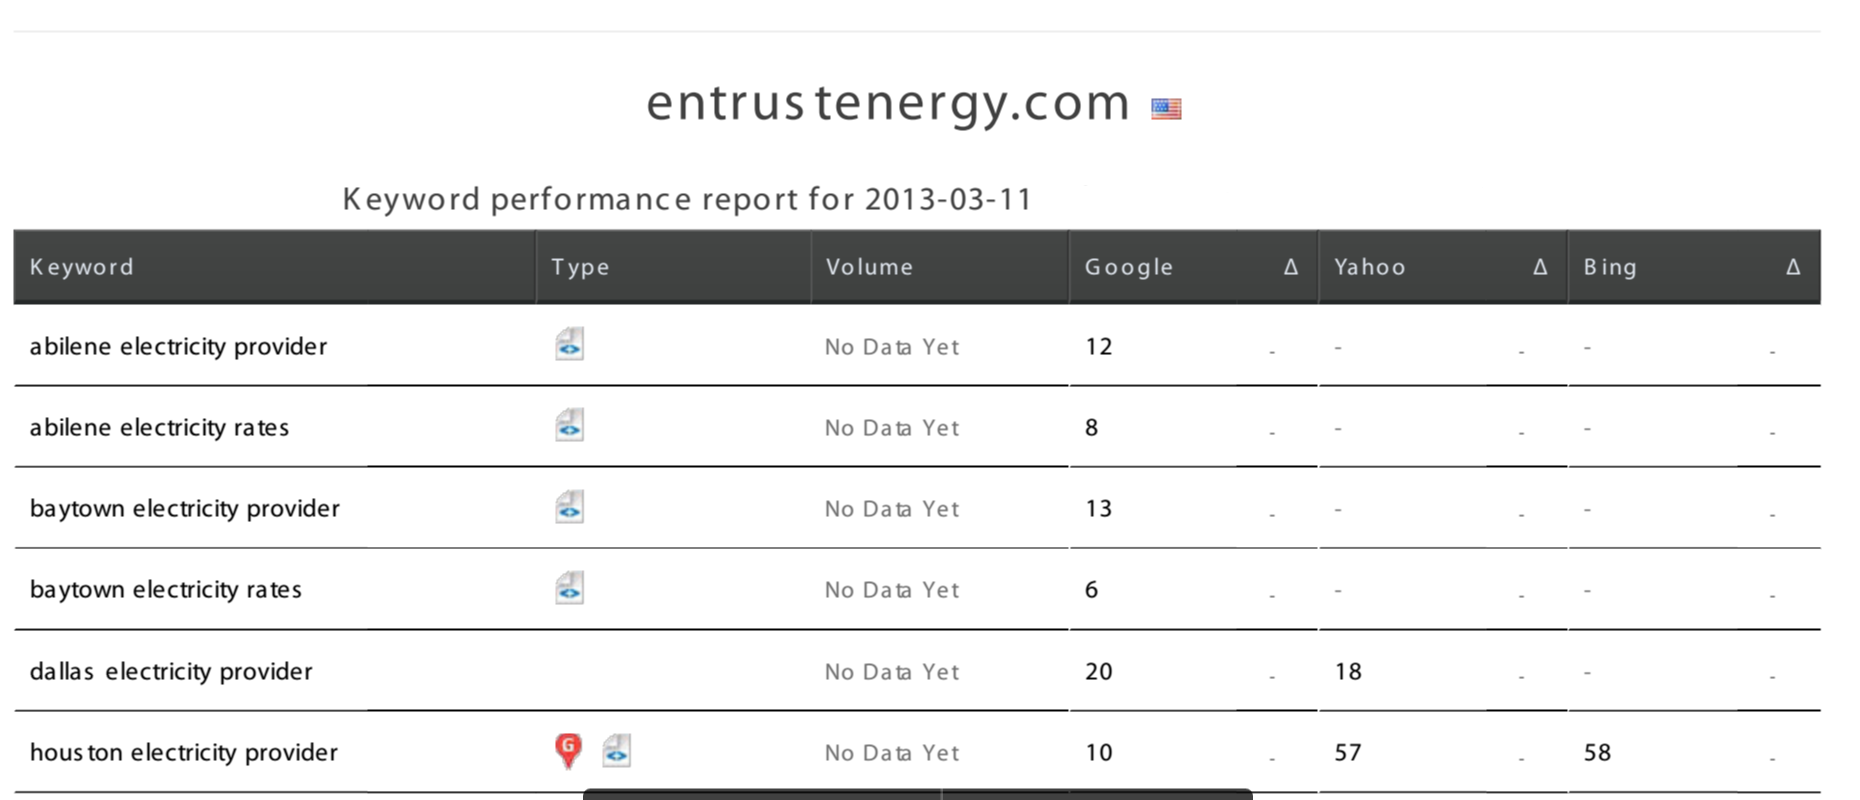 entrust-energy-rankings